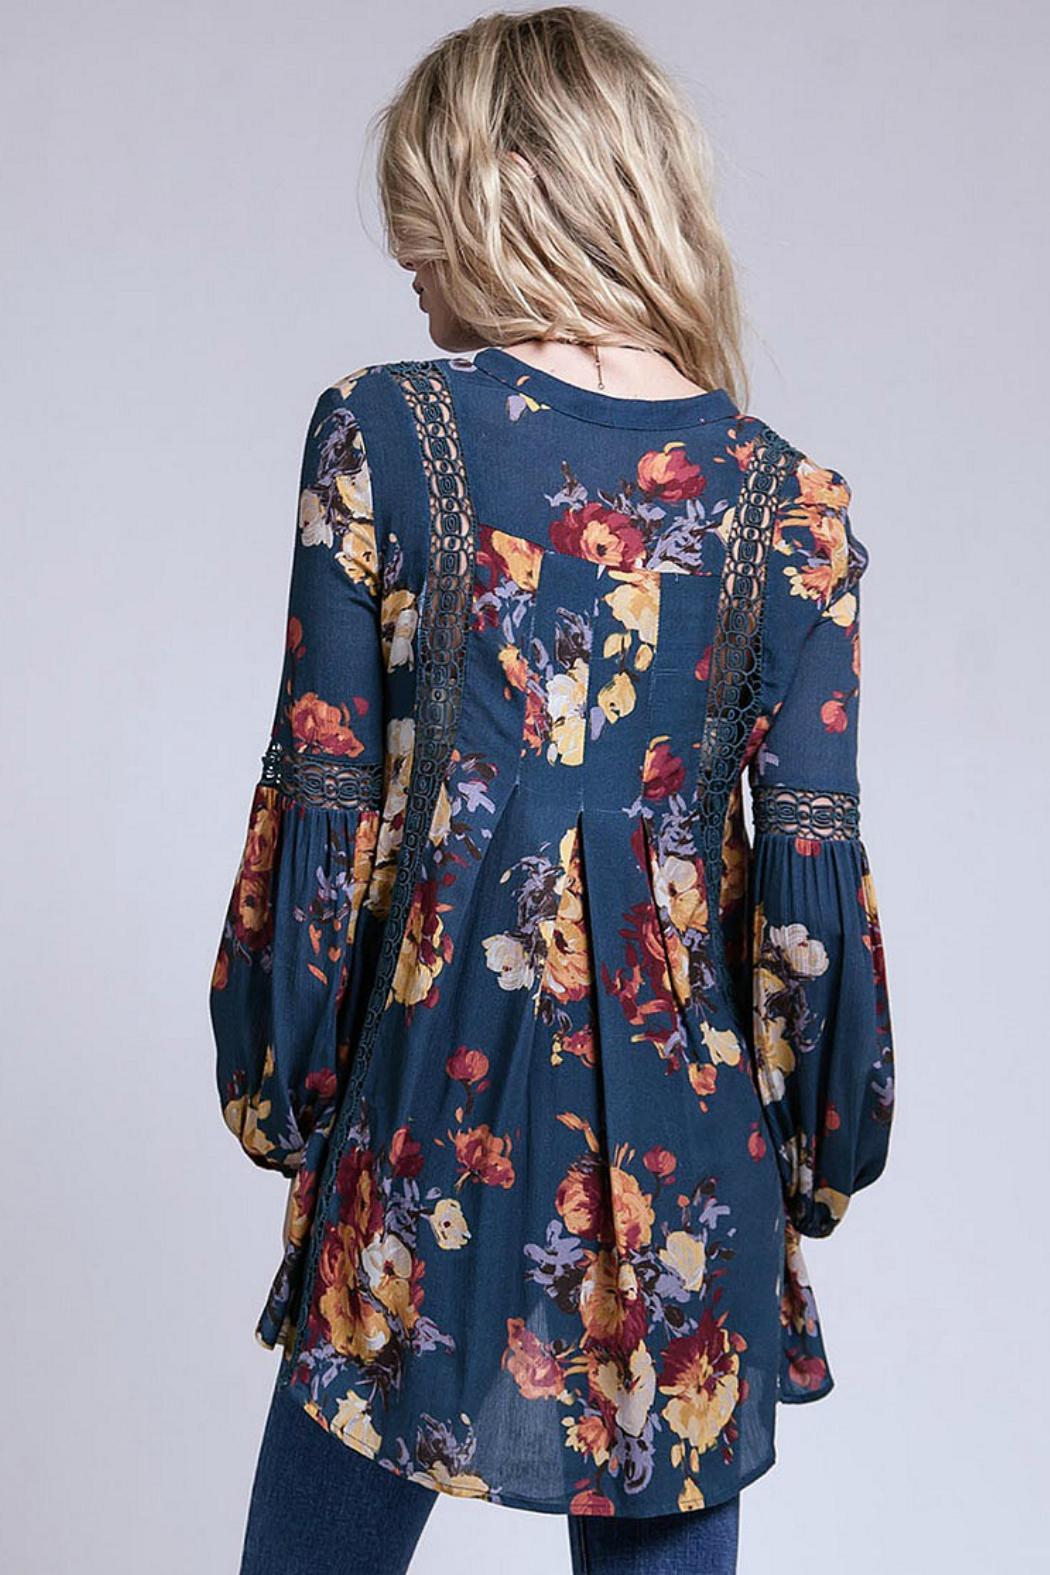 Blu Pepper Boho Floral Top From Colorado By Cali Co